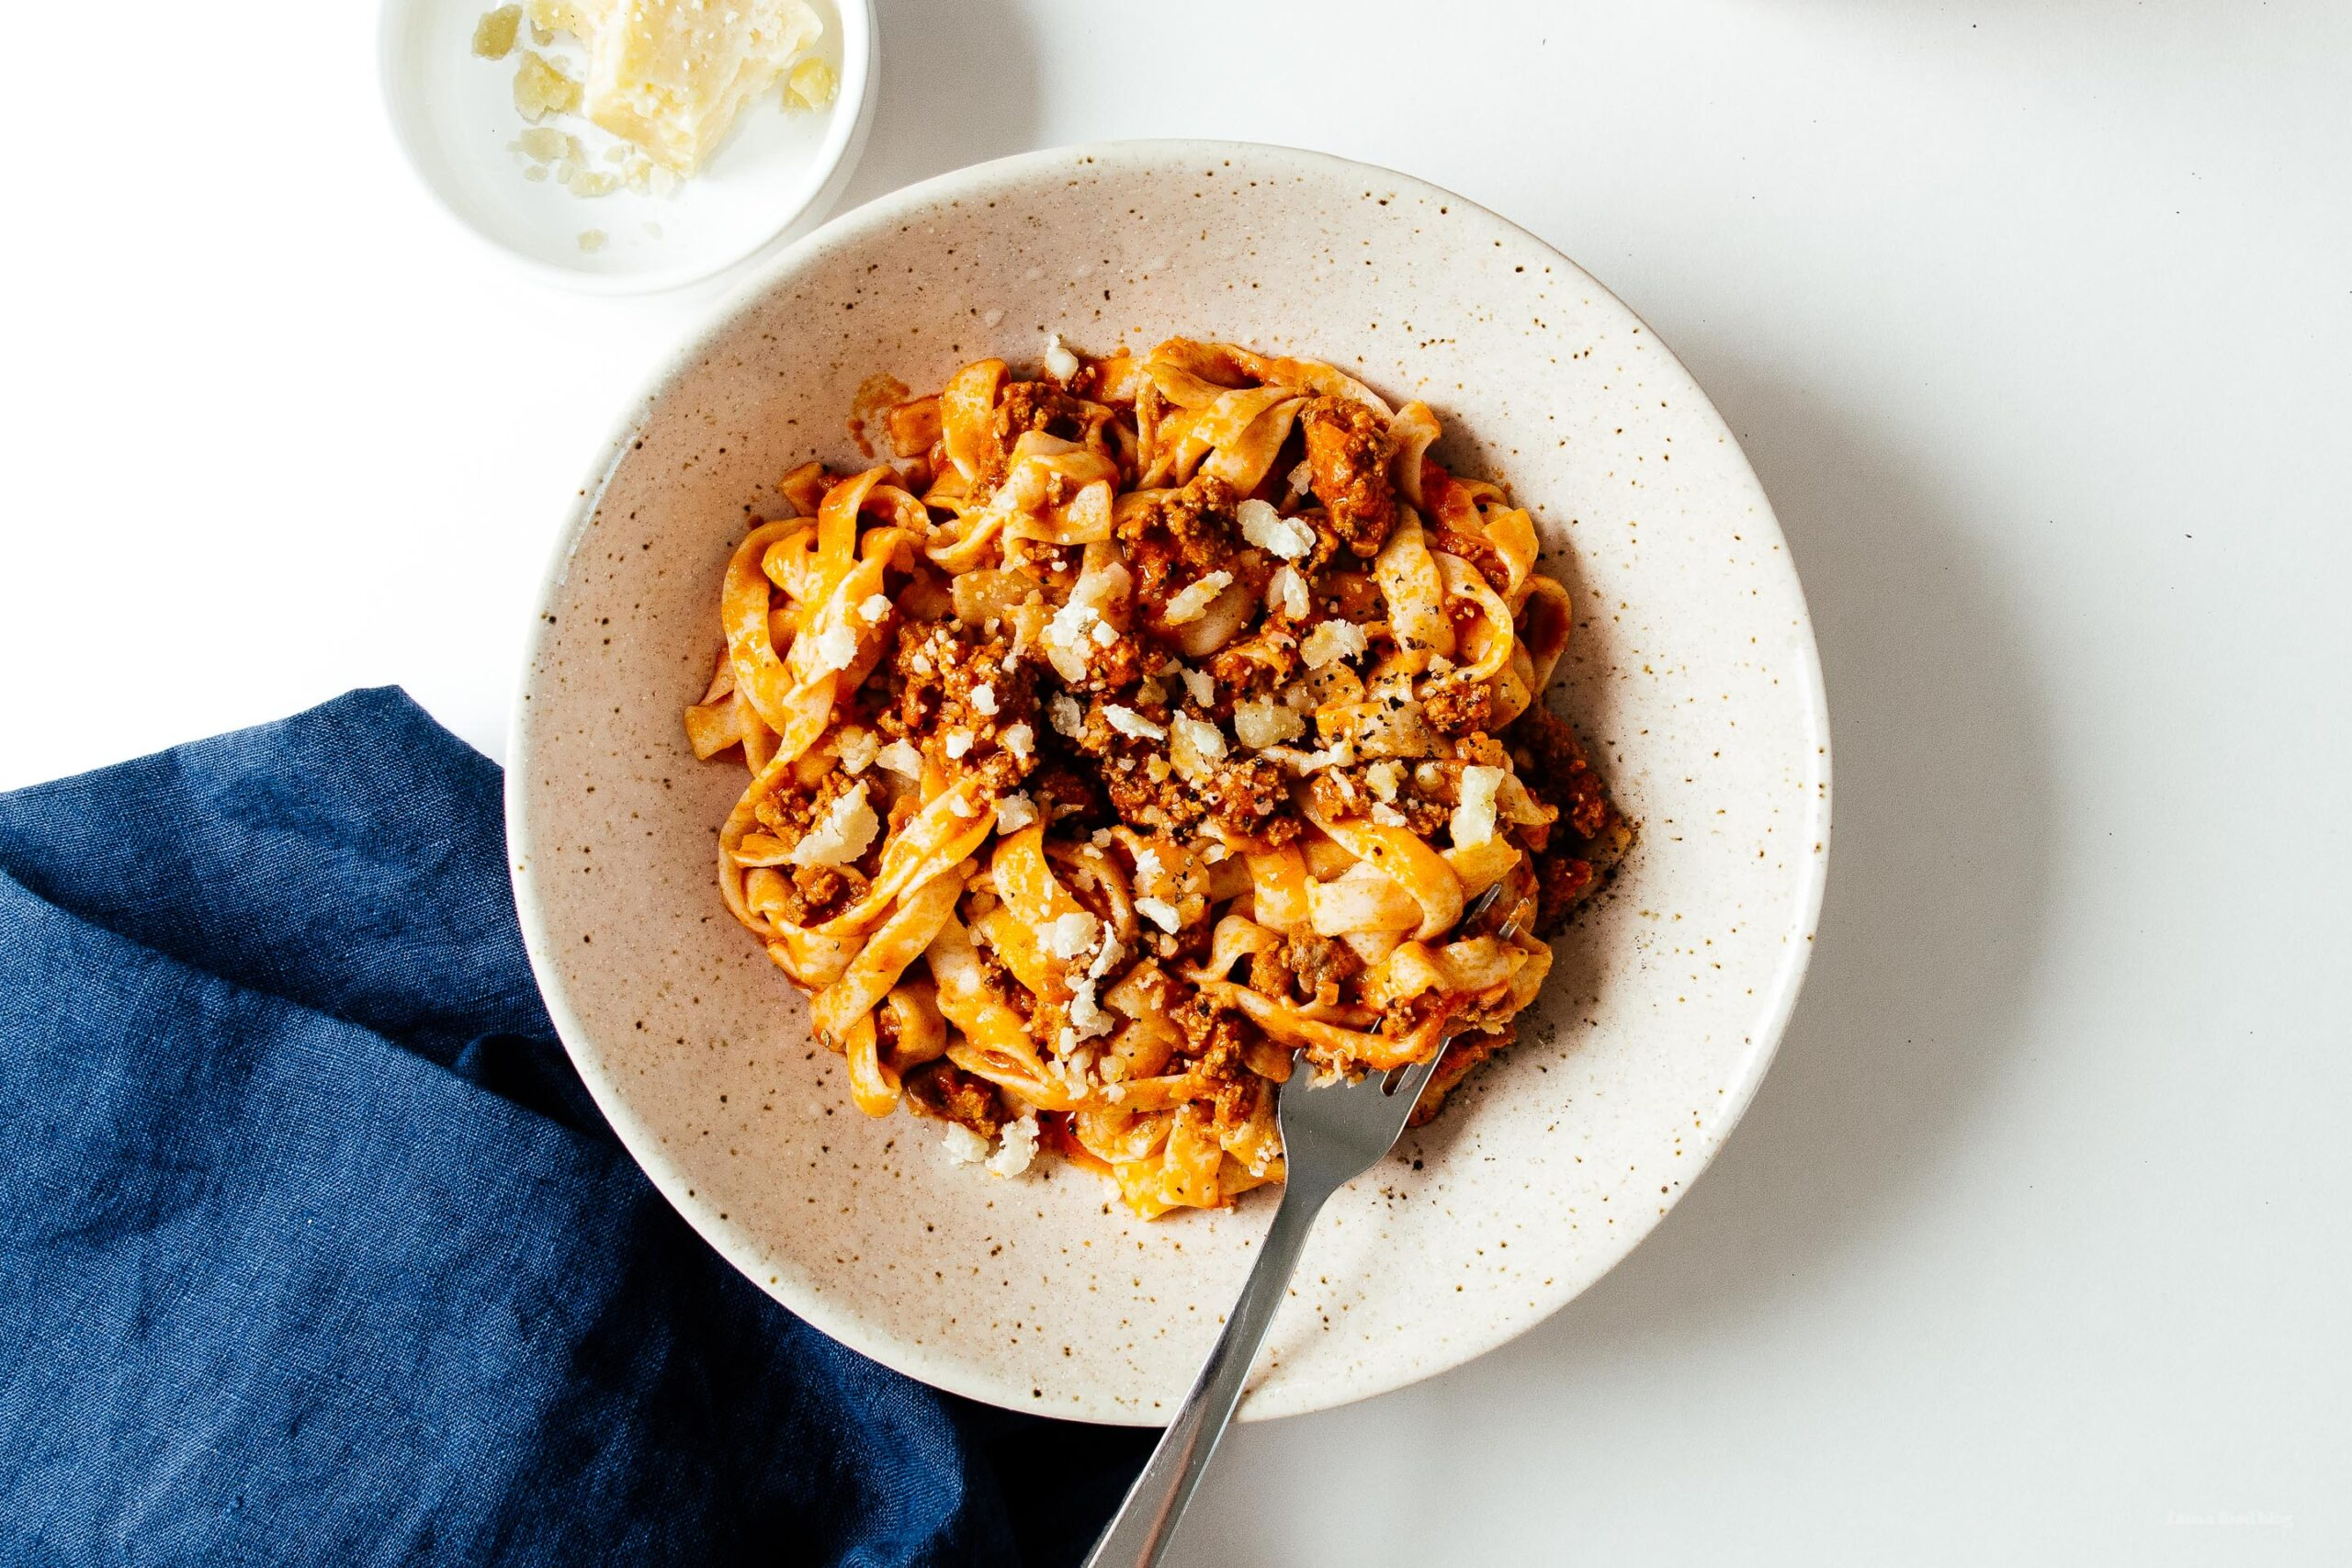 Keto-Friendly Low Carb Bolognese with Shirataki Noodles | www.iamafoodblog.com